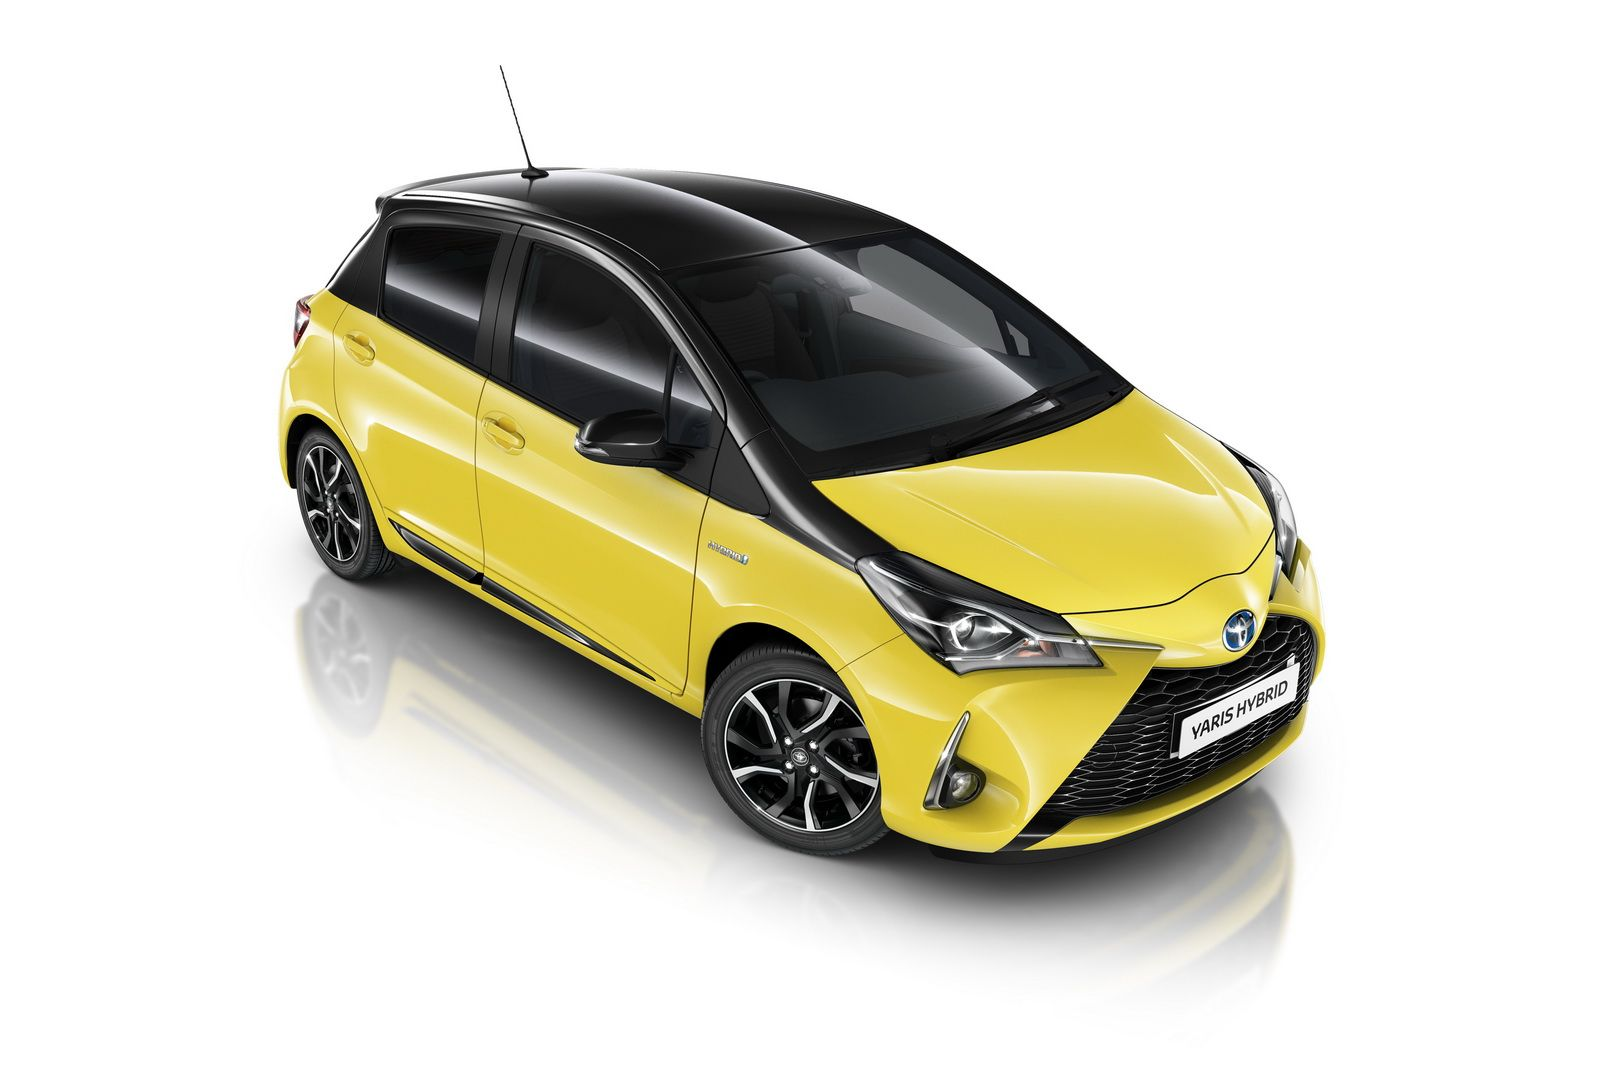 The Yellow Toyota Yaris Debuting In The Uk Toyota Uk Has Come Up With A New Yellow Bi Tone Edition To Its Toyota Yaris Series The Exterior De Yaris Toyota Car